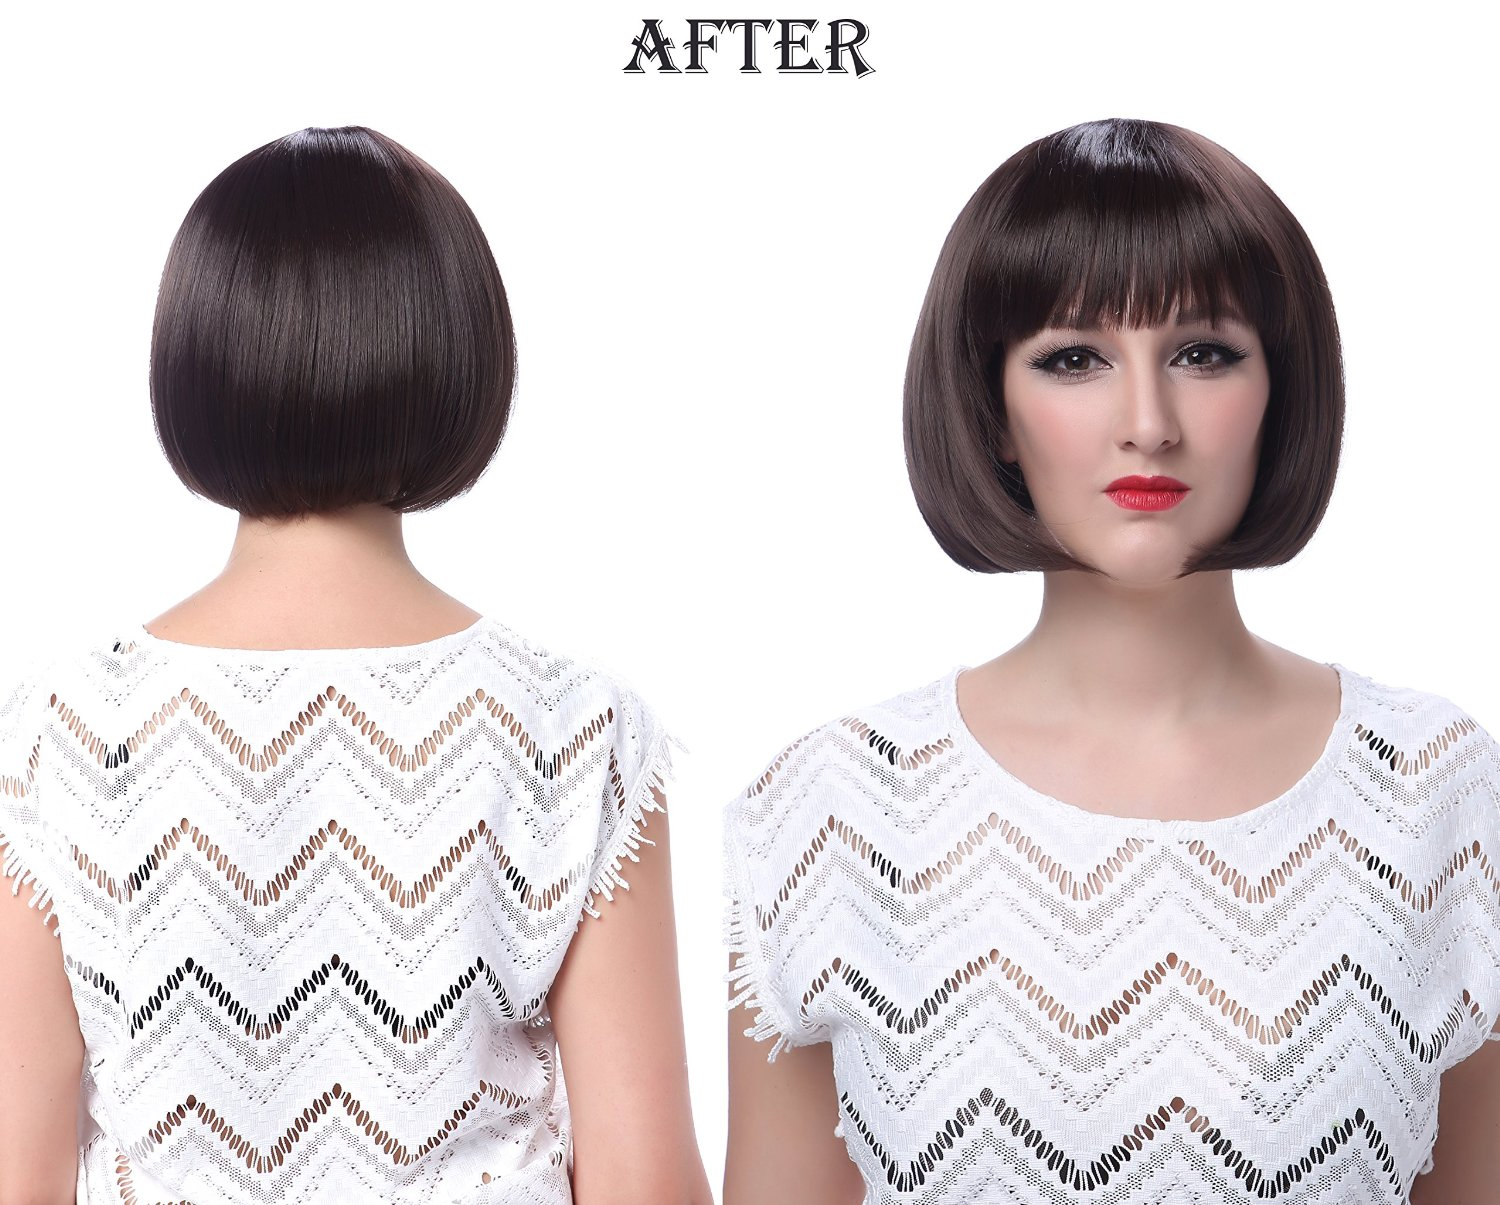 Top 10 Best Straight Wigs for Women - Straight Wigs for Long & Short Hair